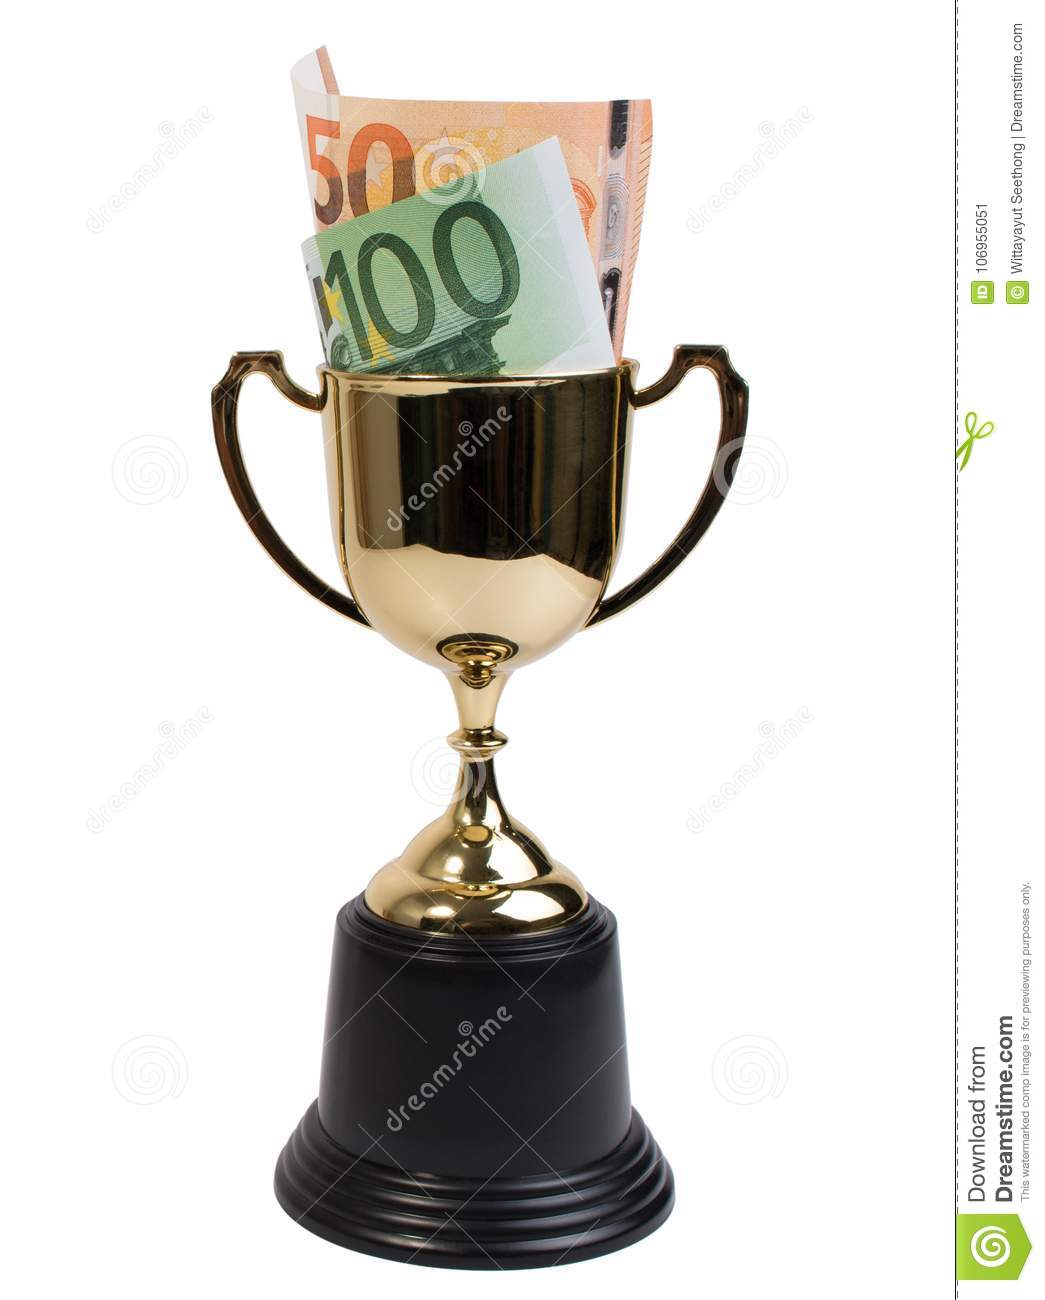 Classic golden trophy or golden cup with euro banknote isolated on white background.